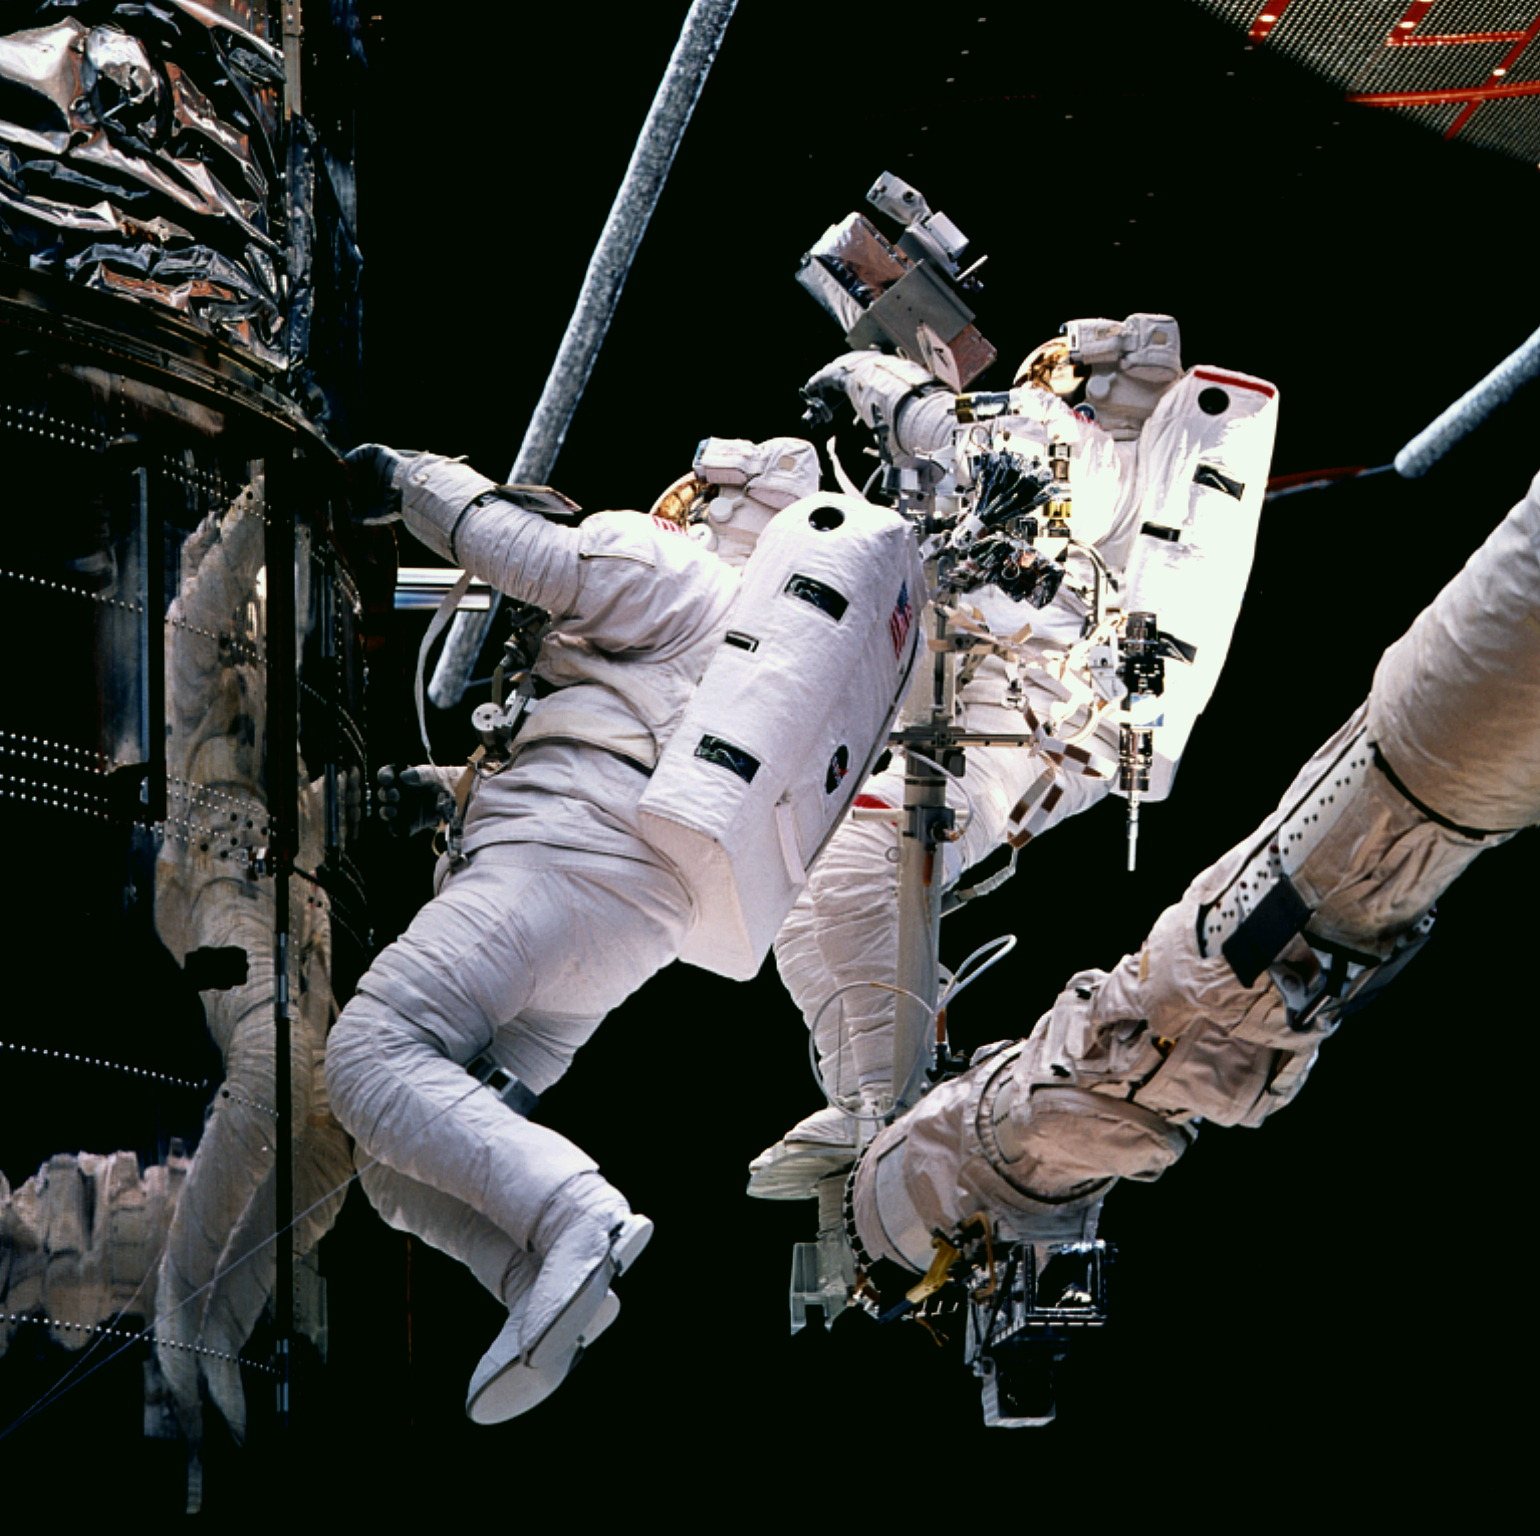 Payload Commander Mark C. Lee (left) and Mission Specialist Steven L. Smith (on RMS arm) conducting an unscheduled fifth extravehicular activity (EVA) during which they attach several thermal insulation blankets to three of Hubble's equipment compartments at the top of the Support Systems Module section. Credit: NASA